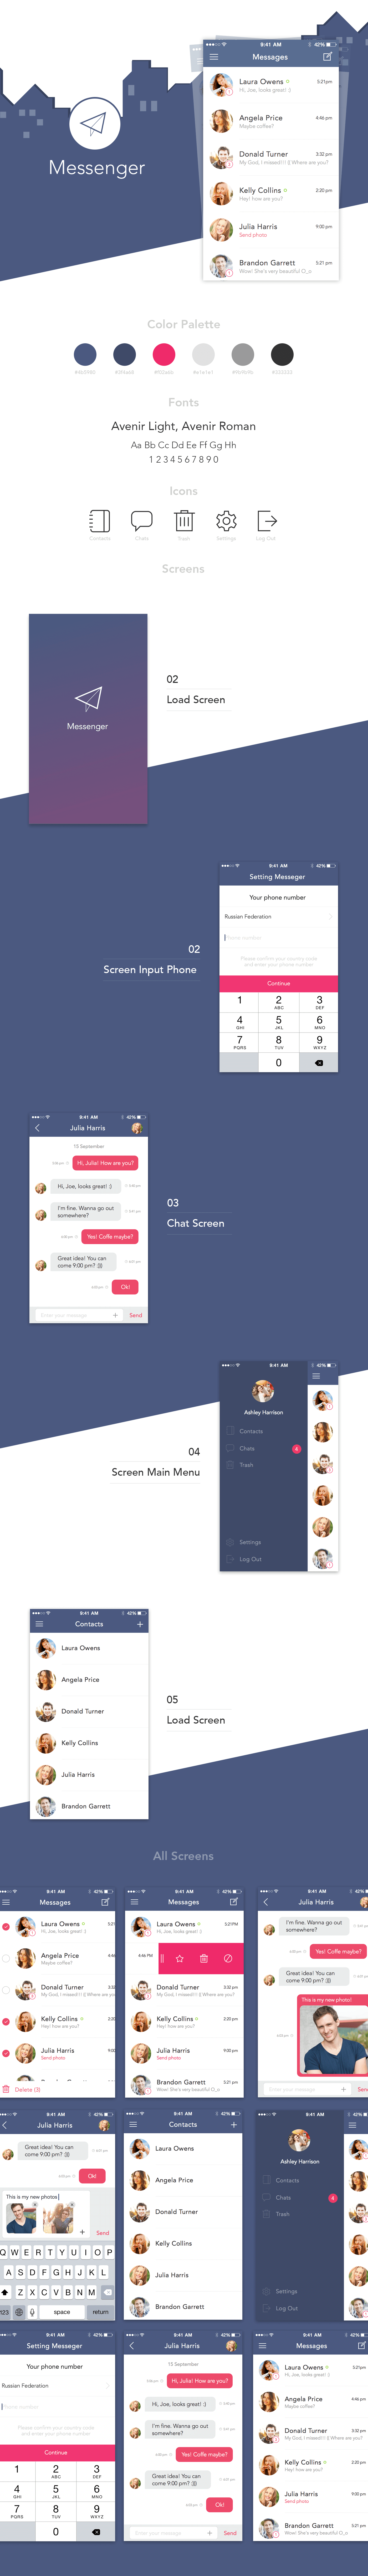 Messenger ios app Sketch